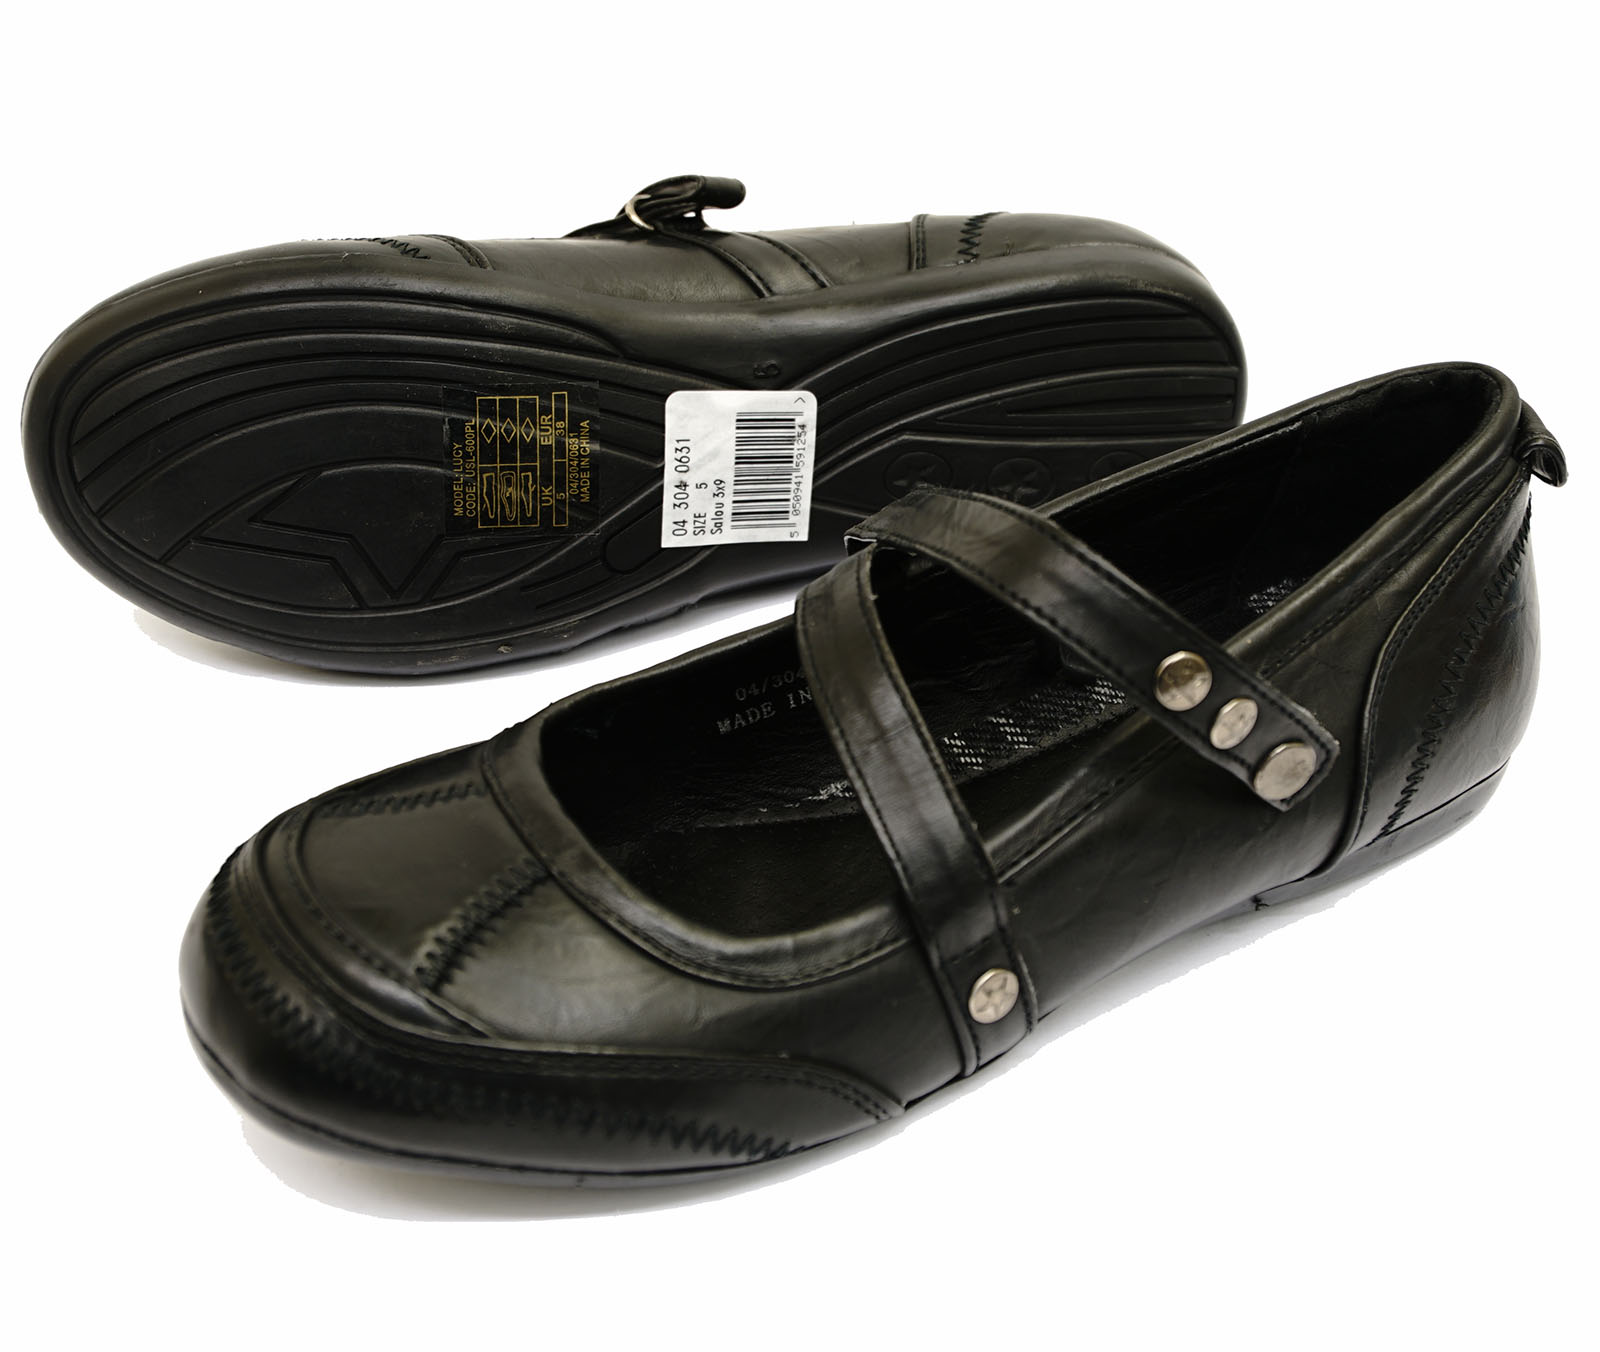 LADIES FLAT SLIP-ON BLACK CASUAL BALLERINA COMFY DOLLY WORK SHOES PUMPS UK 3-9 | EBay